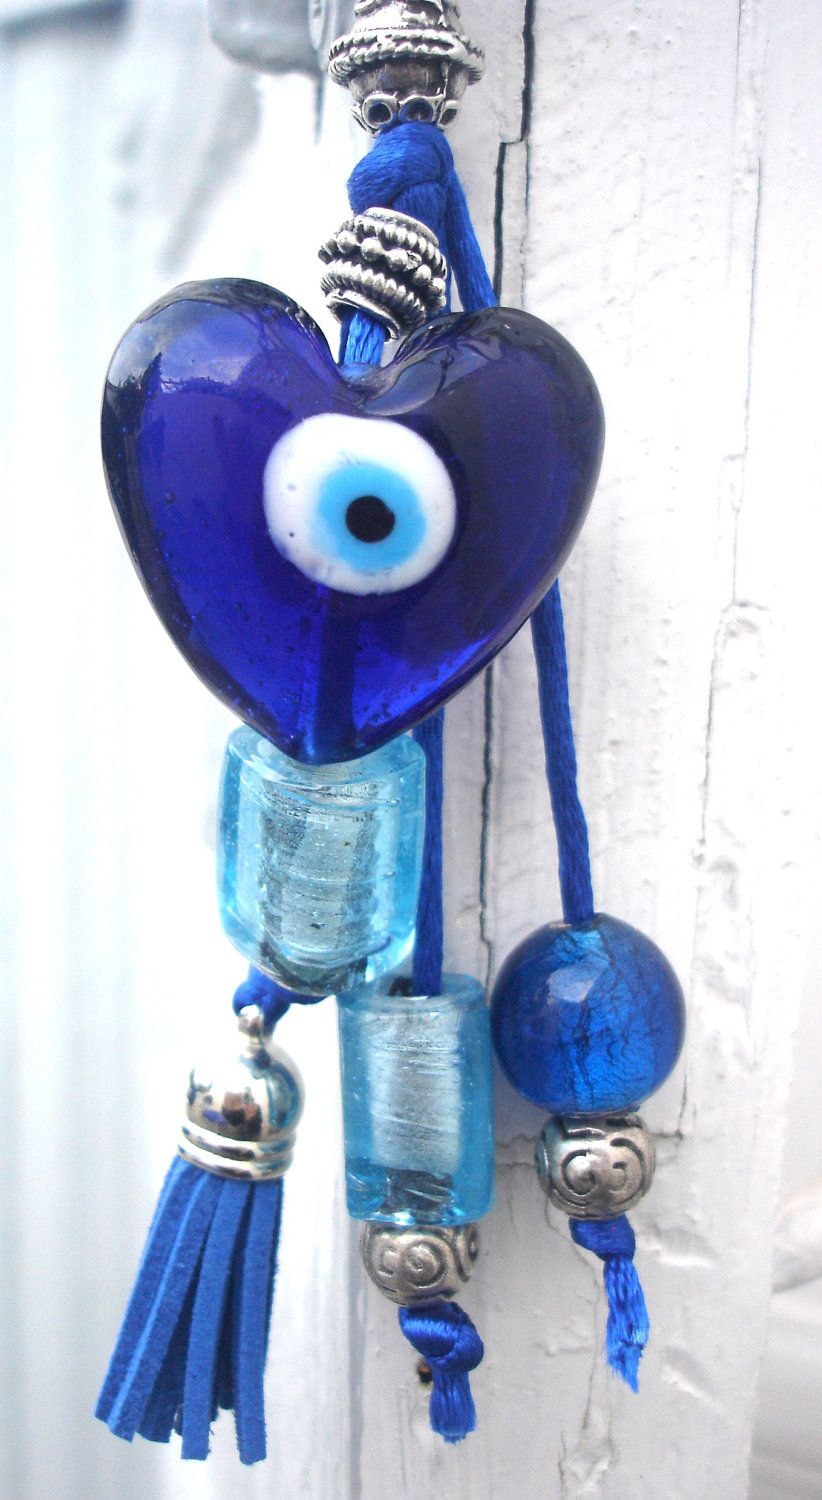 Good luck heart greek lucky blue eye keychain evil eye turkish magickal ritual sacred tools nazar amulet for protection against the evil eye buycottarizona Image collections